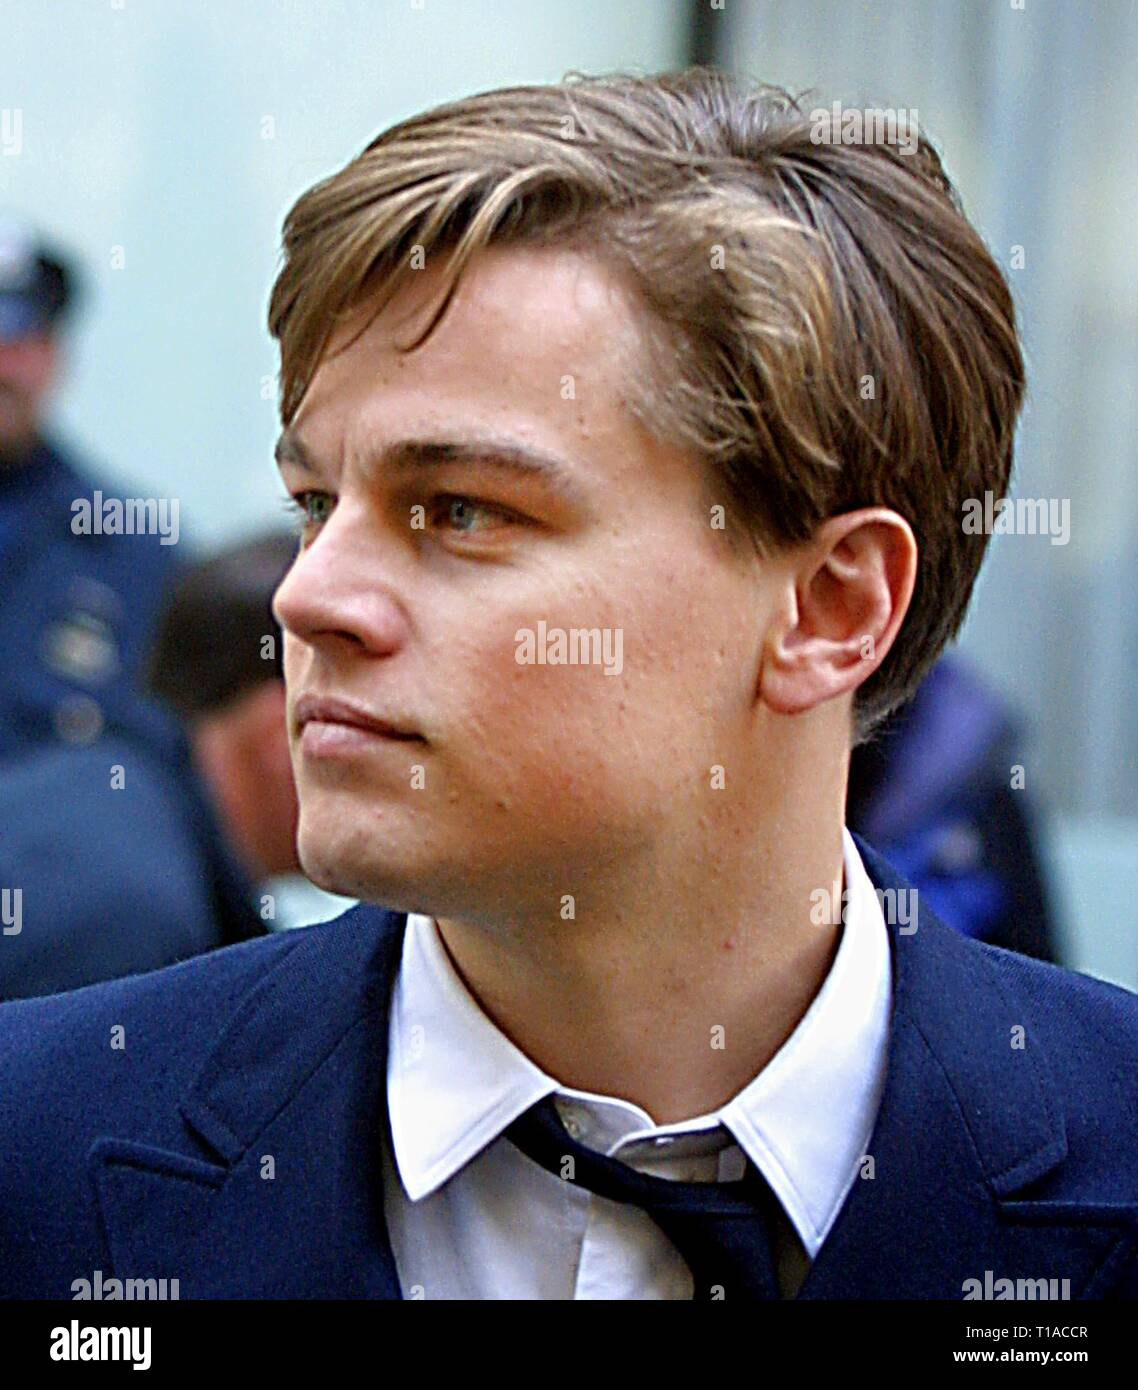 Catch Me If You Can Leonardo Dicaprio Stock Photos Catch Me If